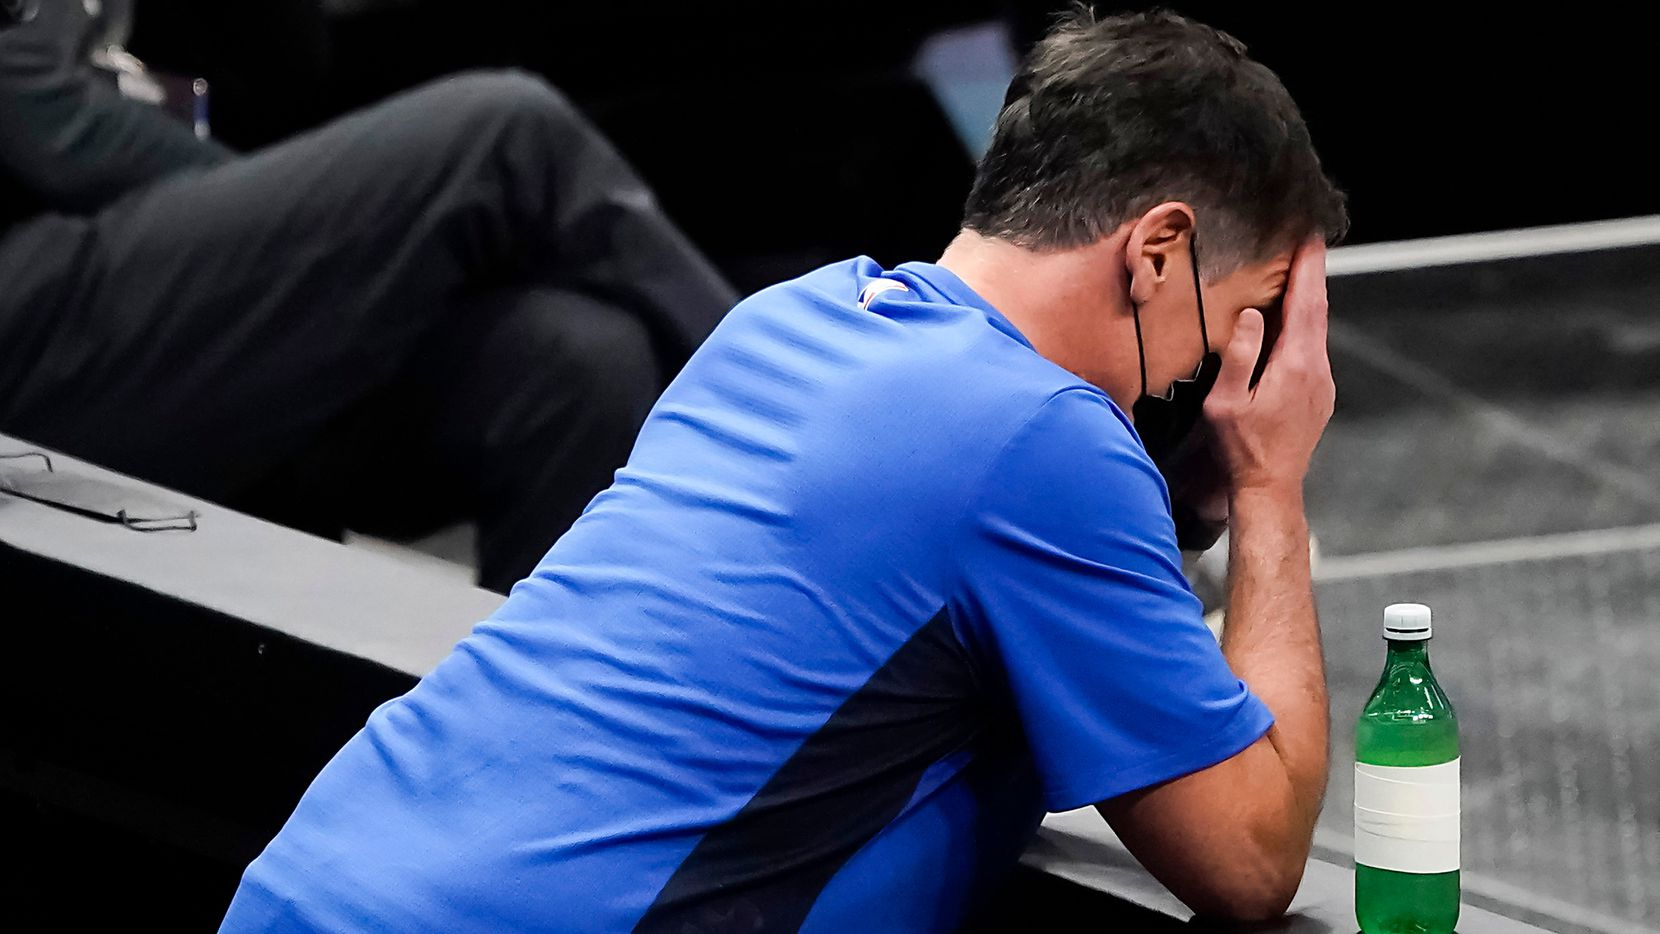 Dallas Mavericks owner Mark Cuban reacts to a call during the second half of an NBA basketball against the Sacramento Kings game at American Airlines Center on Sunday, May 2, 2021, in Dallas.